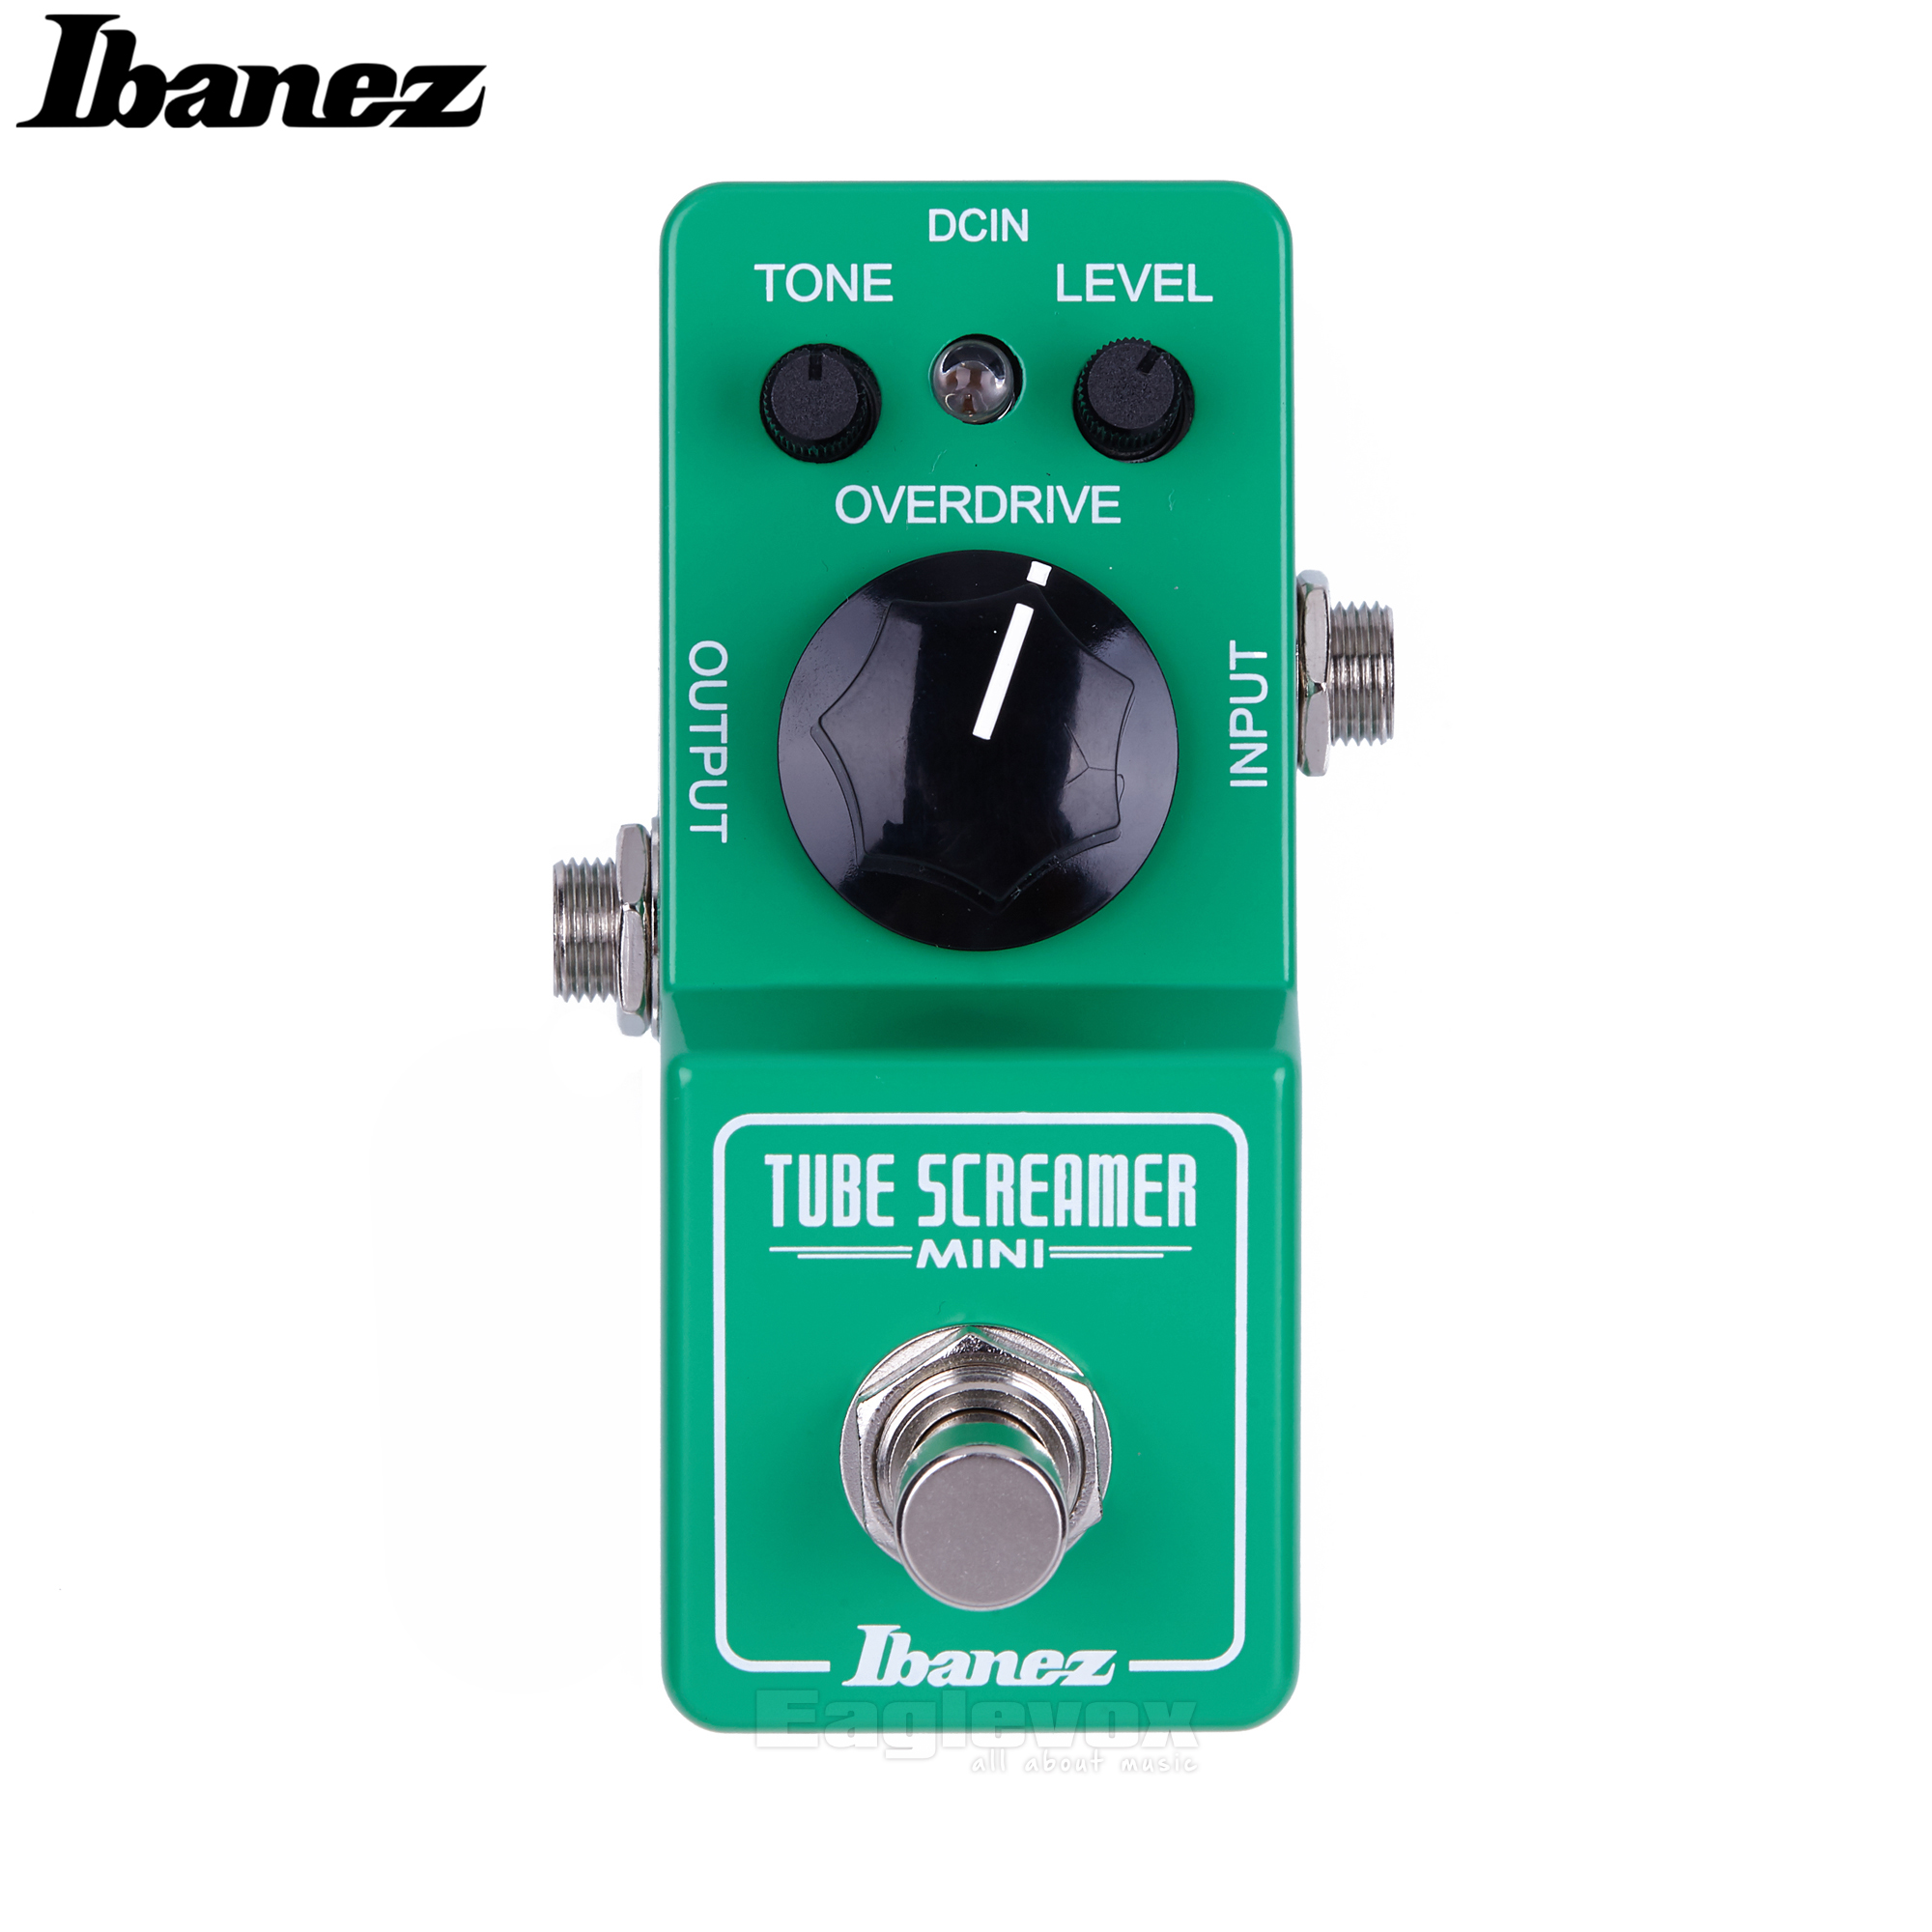 Ibanez Tube Sreamer Overdrive Guitar Effect Pedal True Bypass Analog Effects Stompbox for Electric Guitar ST Mini aroma adr 3 dumbler amp simulator guitar effect pedal mini single pedals with true bypass aluminium alloy guitar accessories